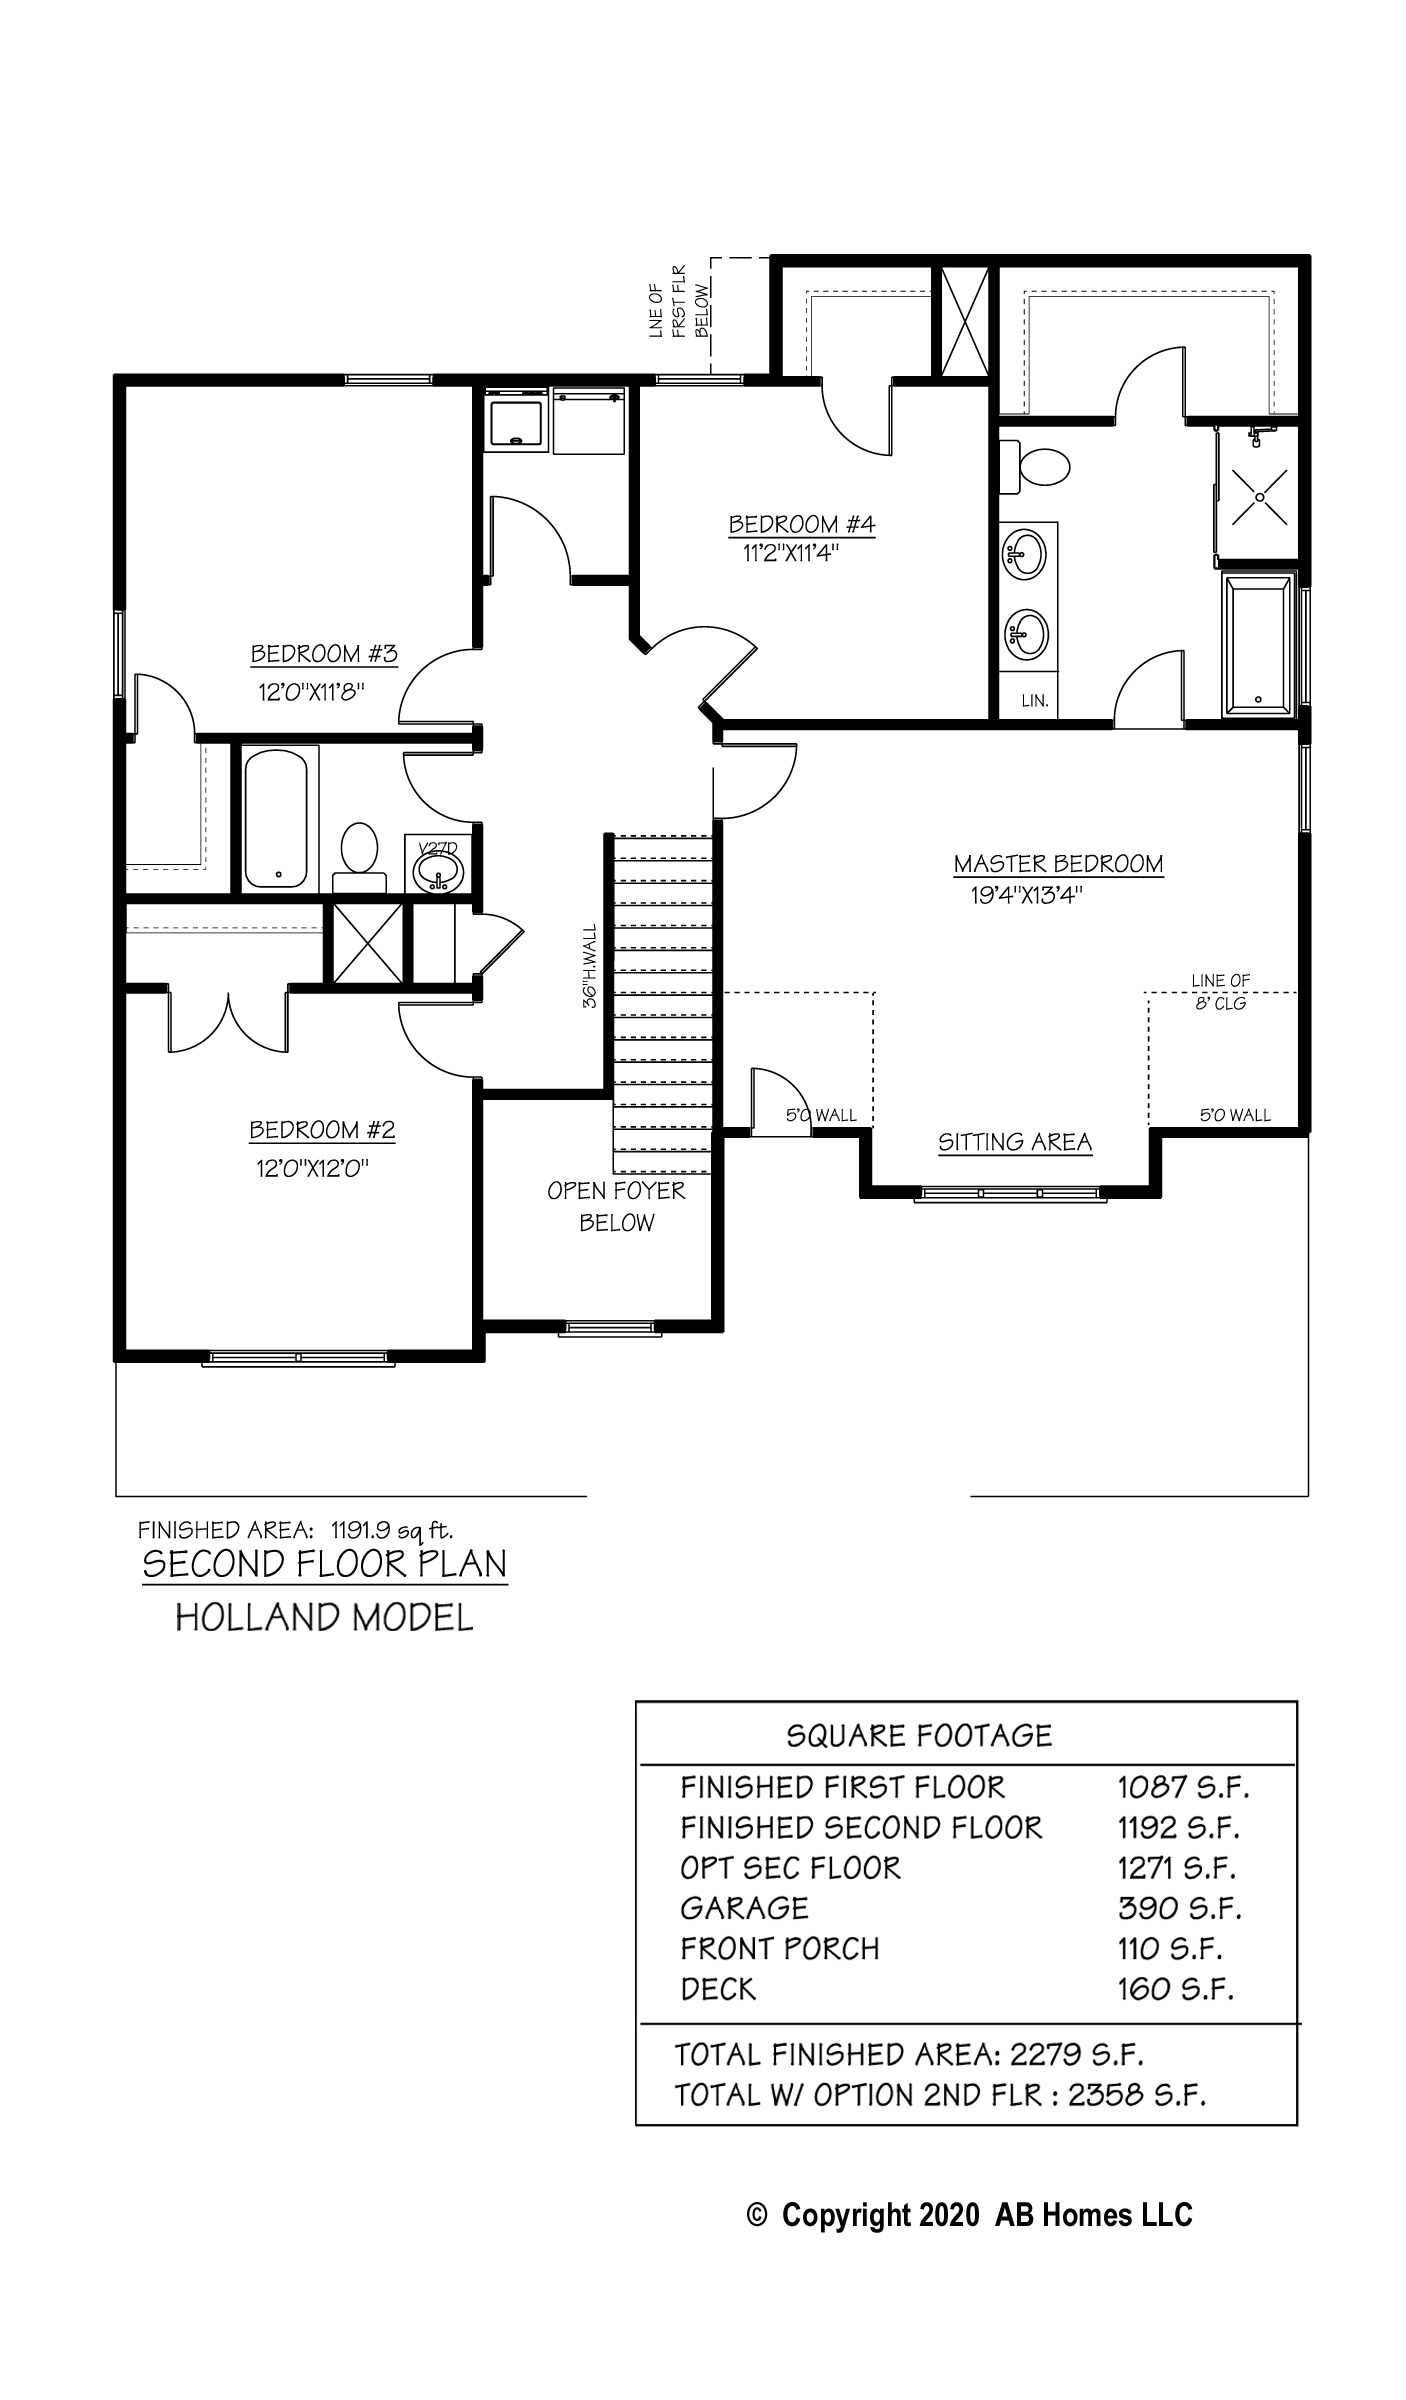 The Holland second floor plan by AB Homes